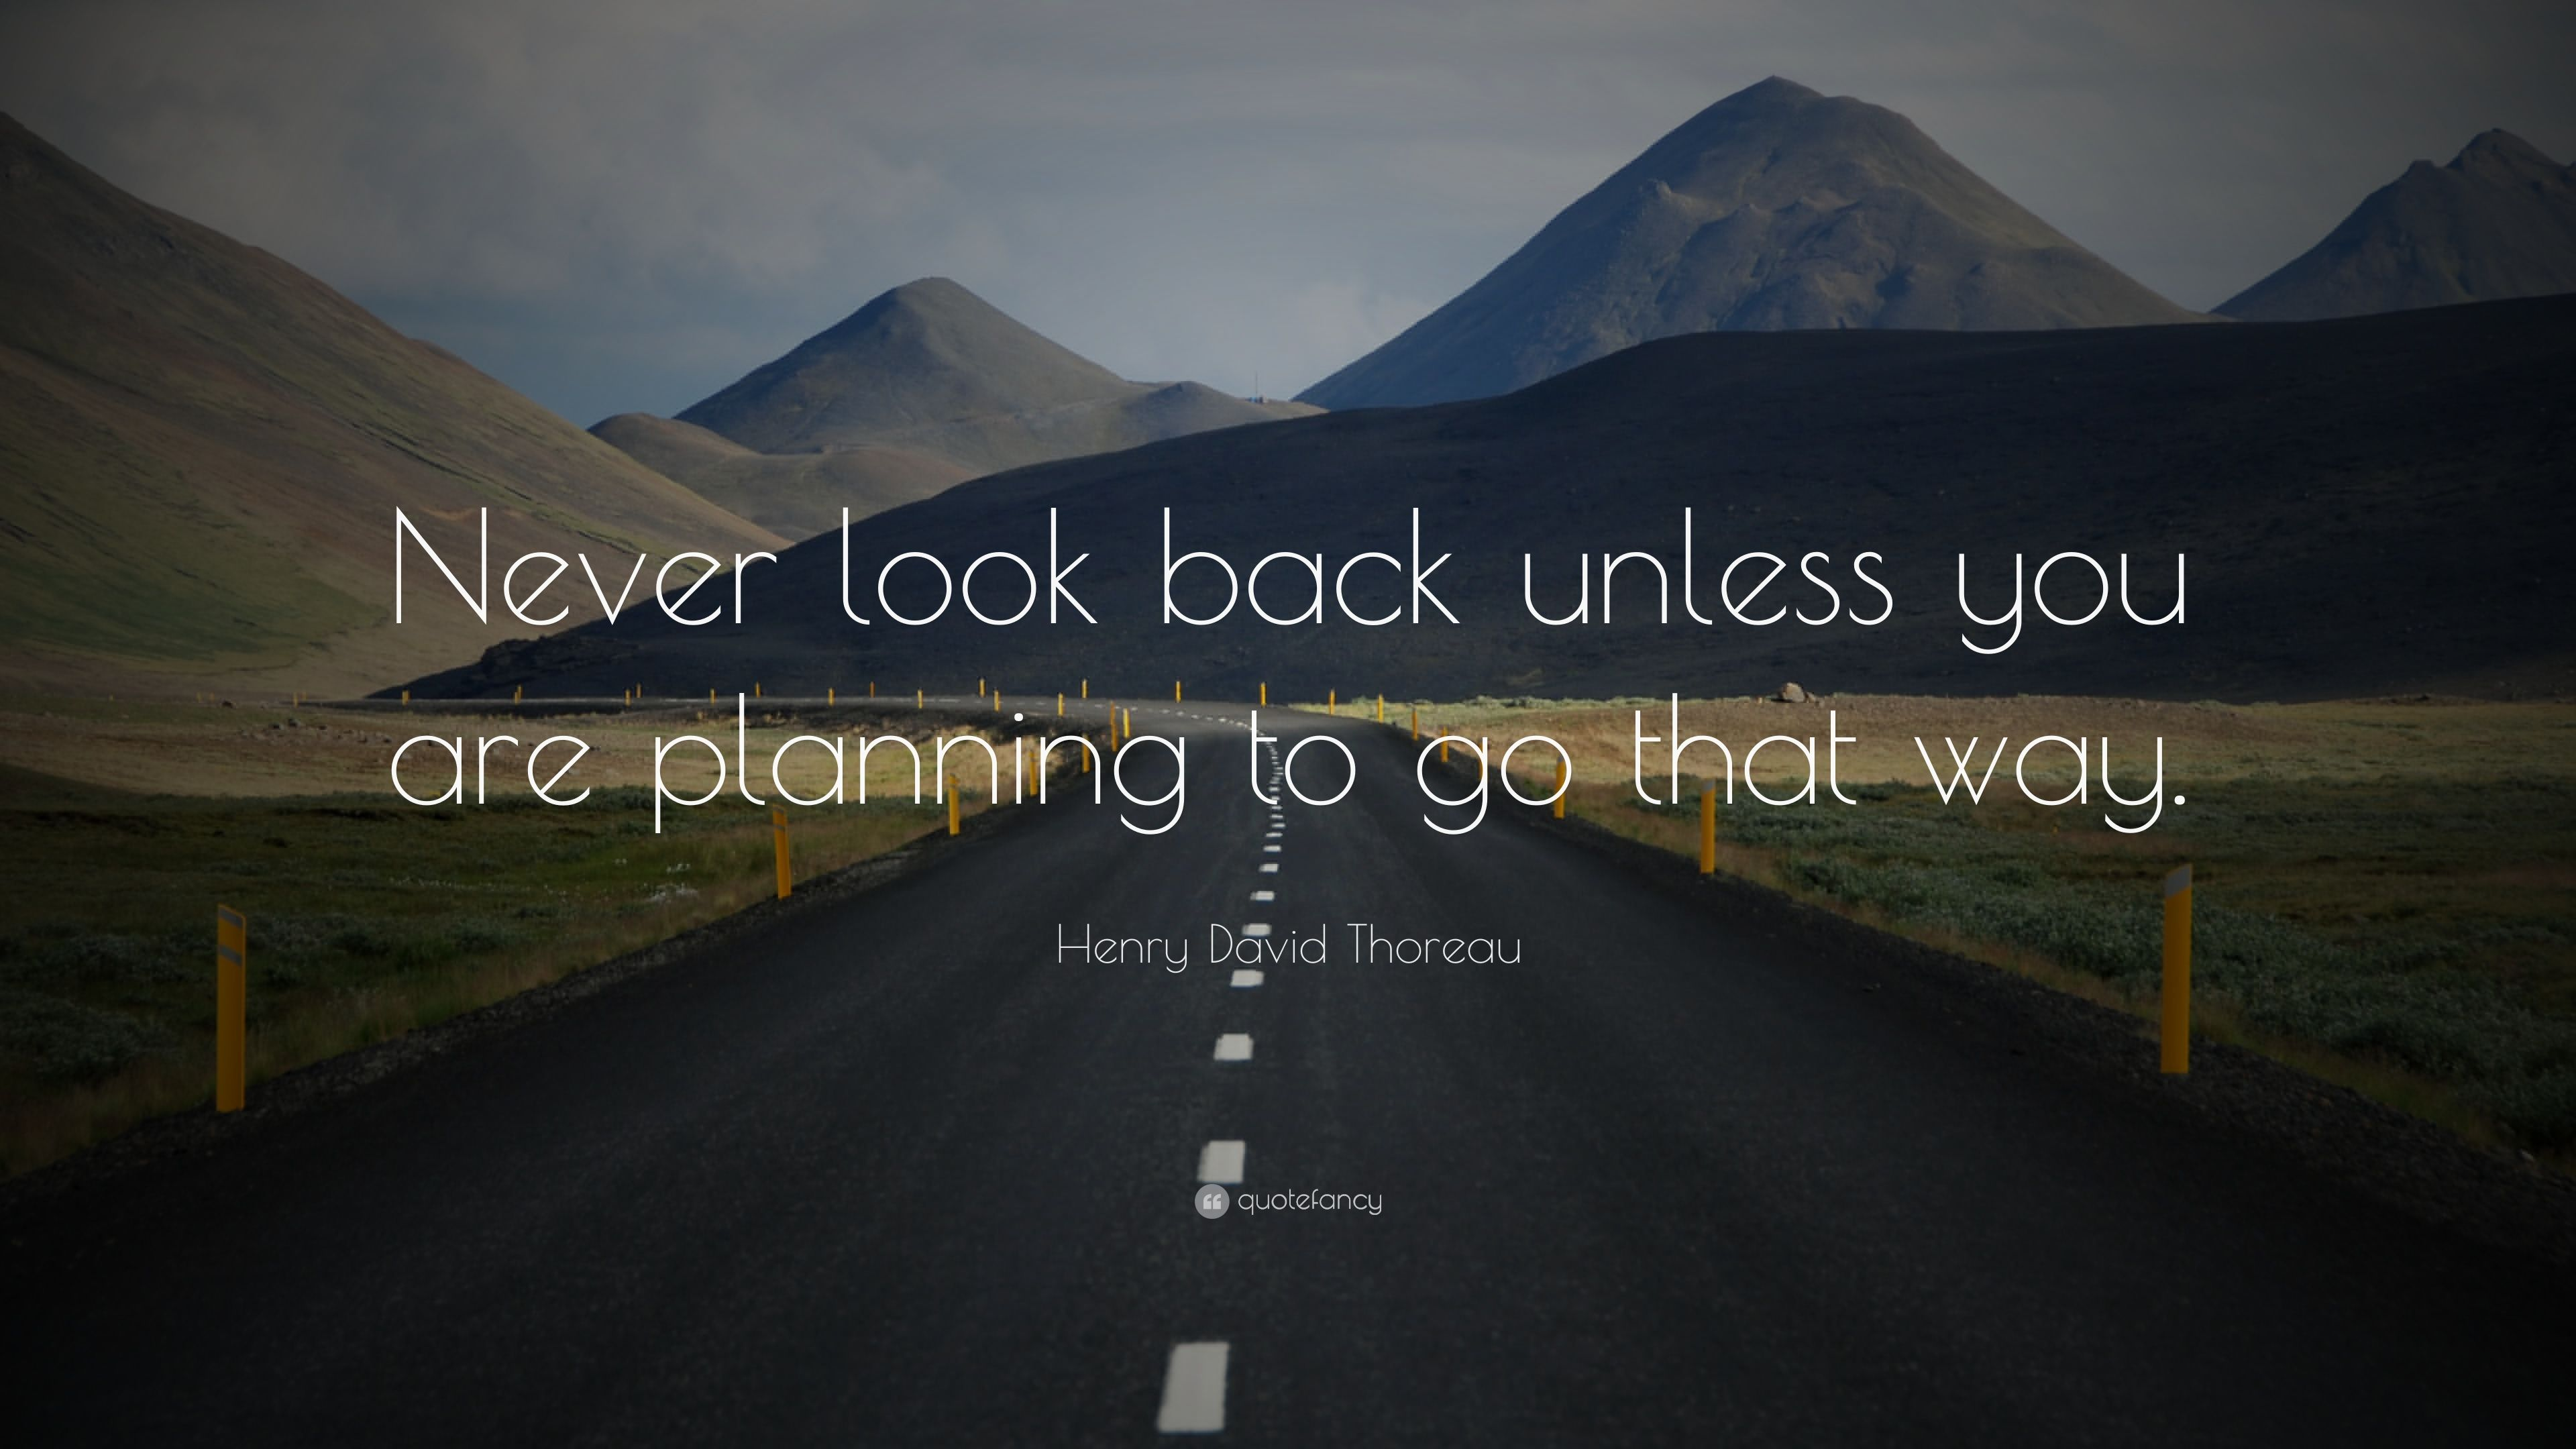 Henry David Thoreau Quote Never Look Back Unless You Are Planning To Go That Way Life Quotes Wallpaper Persistence Quotes Benjamin Franklin Quotes